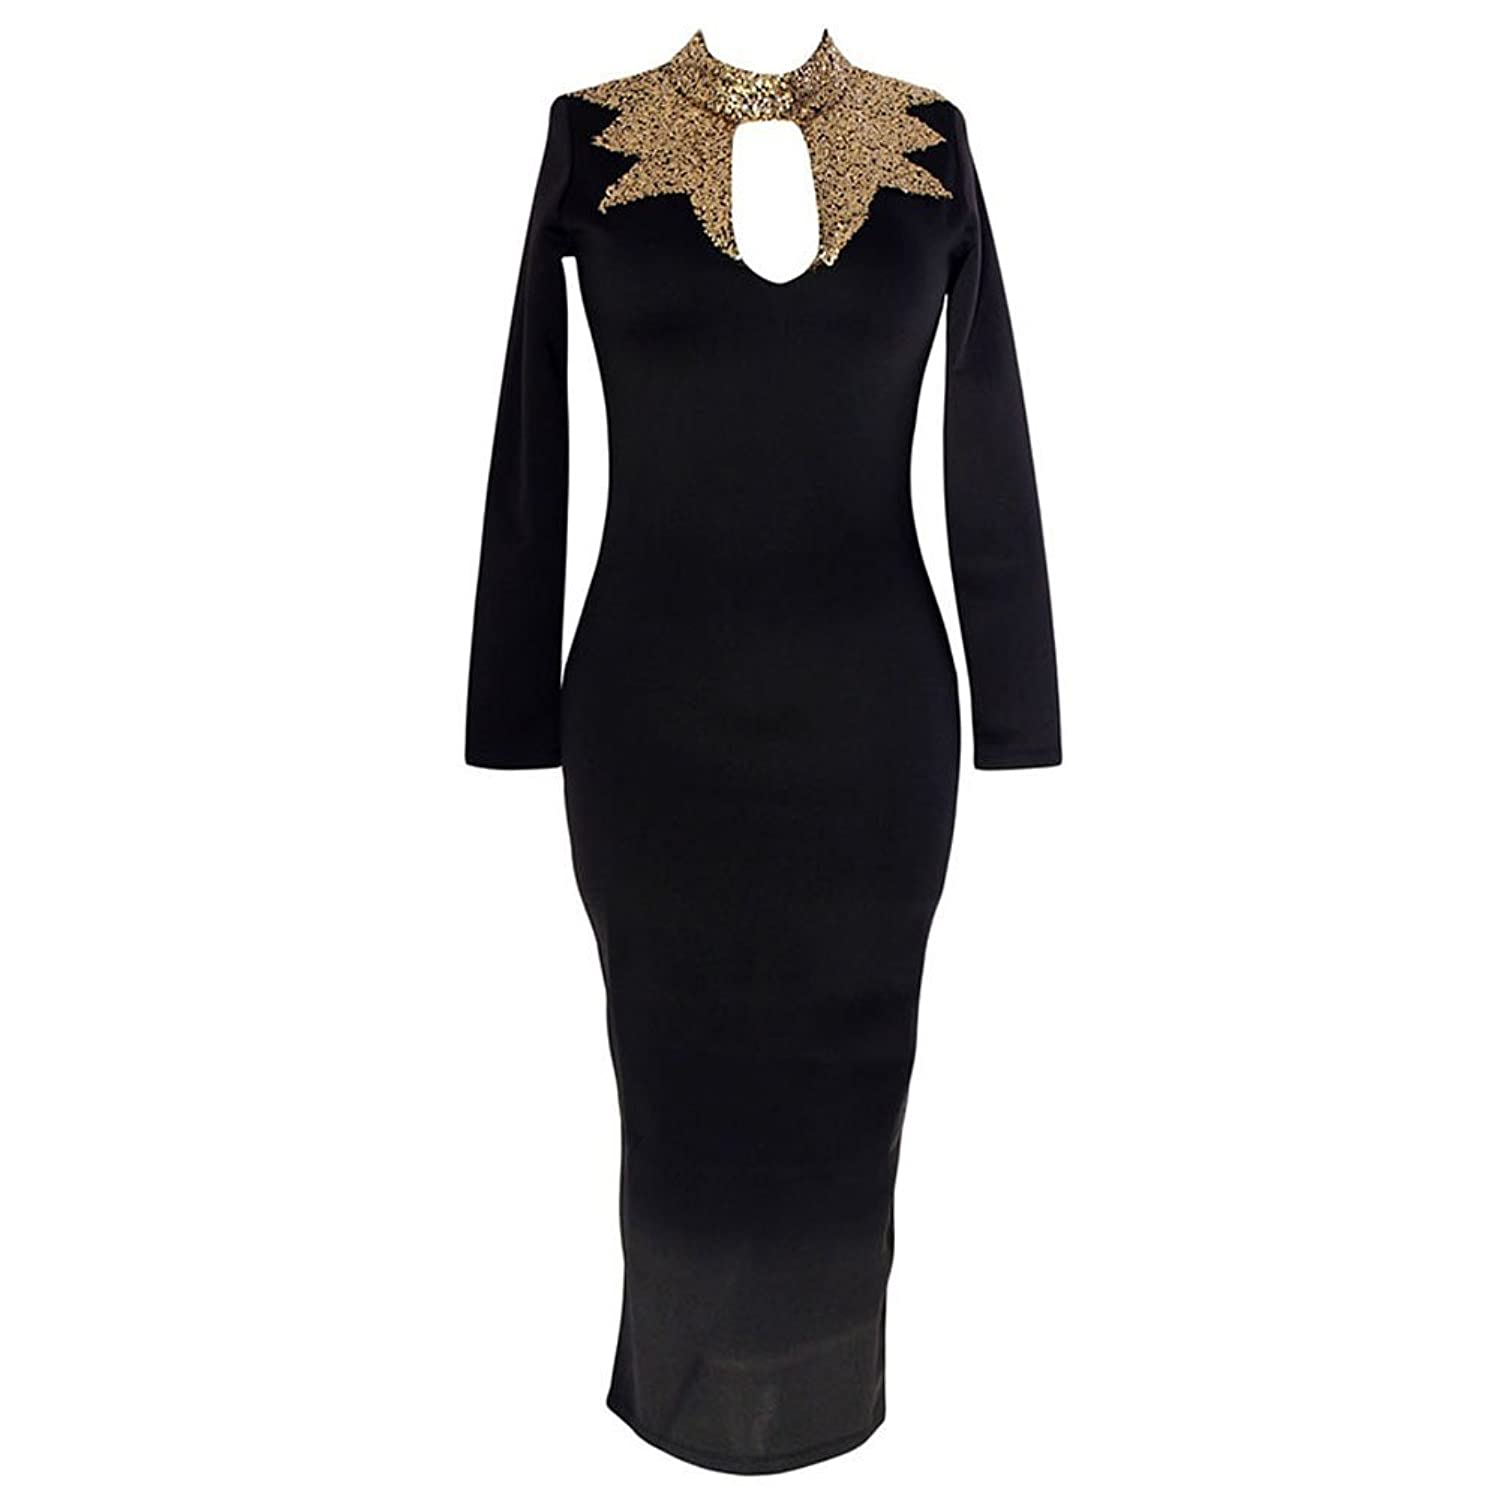 Women's Black Gold Sequins Mock Neck Midi Dress